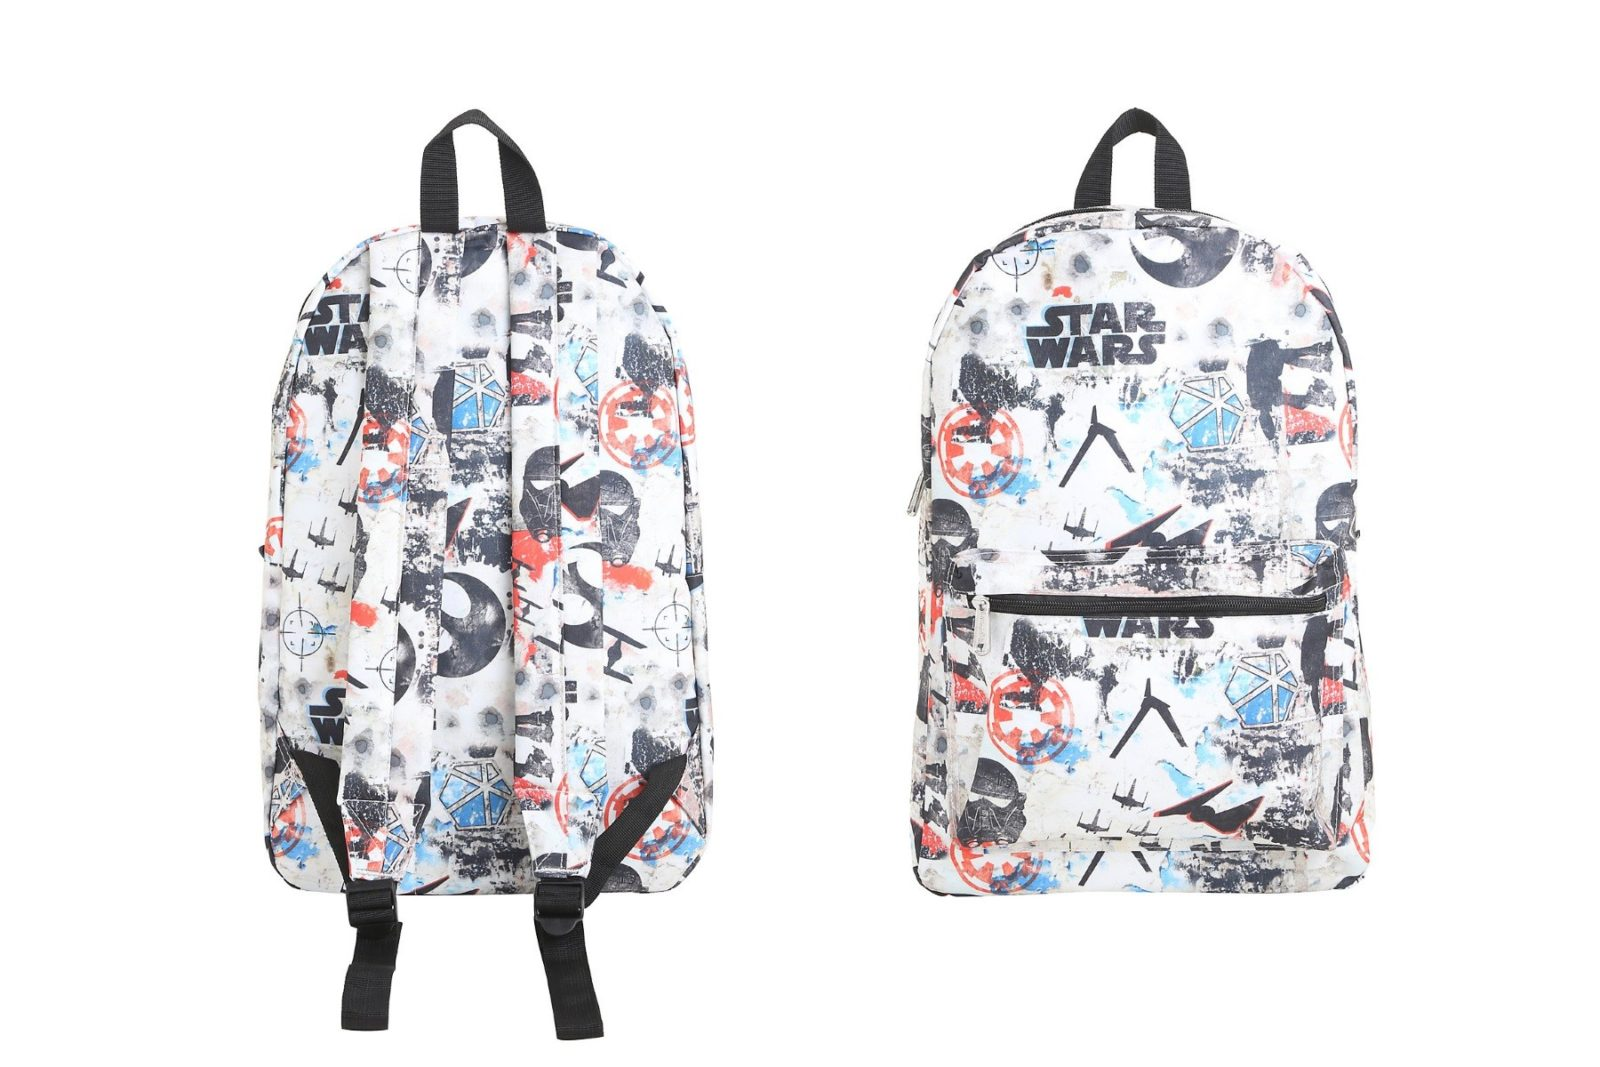 Loungefly Rogue One backpack out now